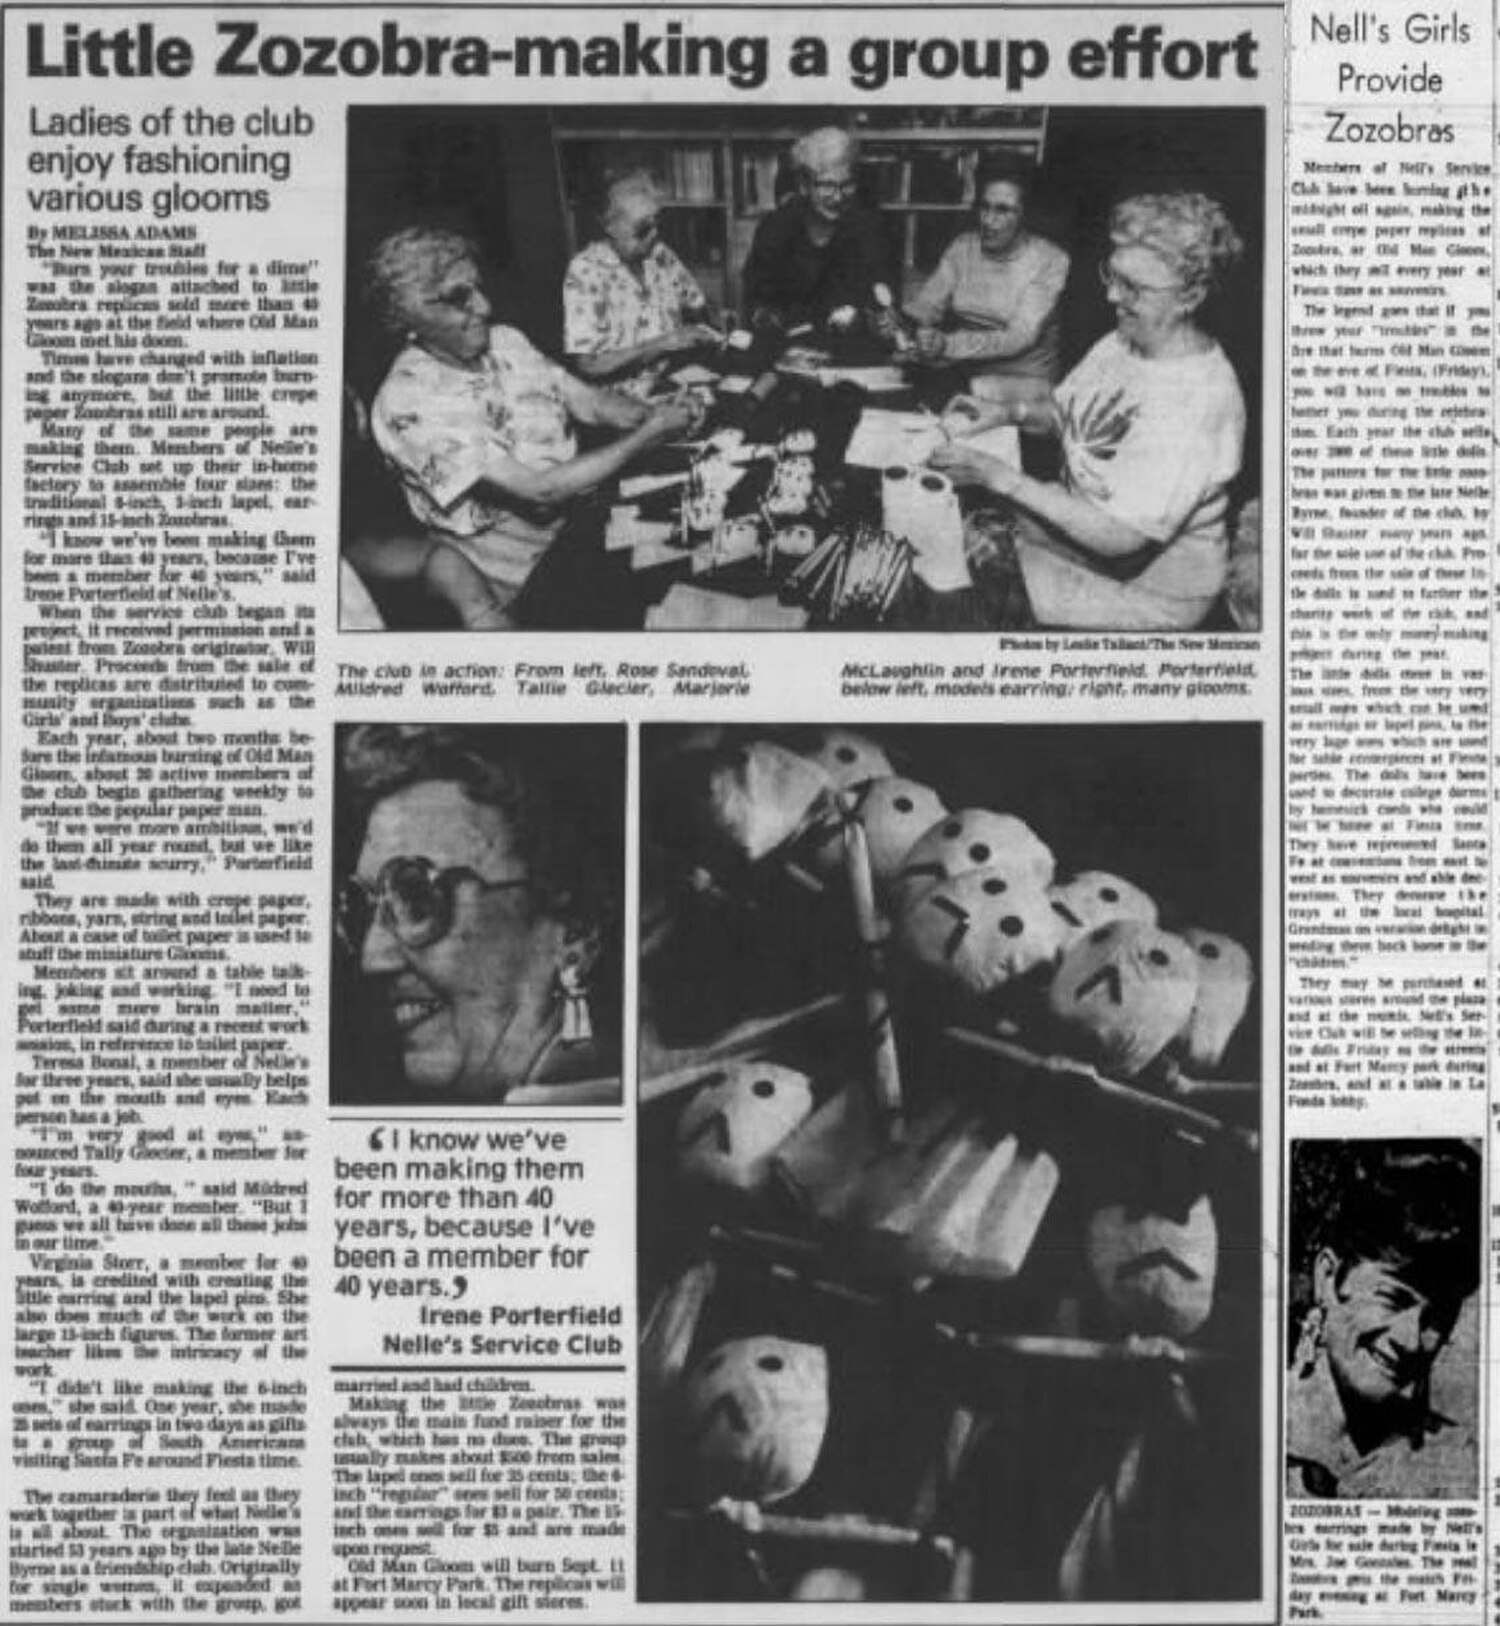 A 1967 article discusses Nell's Service Club's gloom-making endeavor. Courtesy Santa Fe Kiwanis